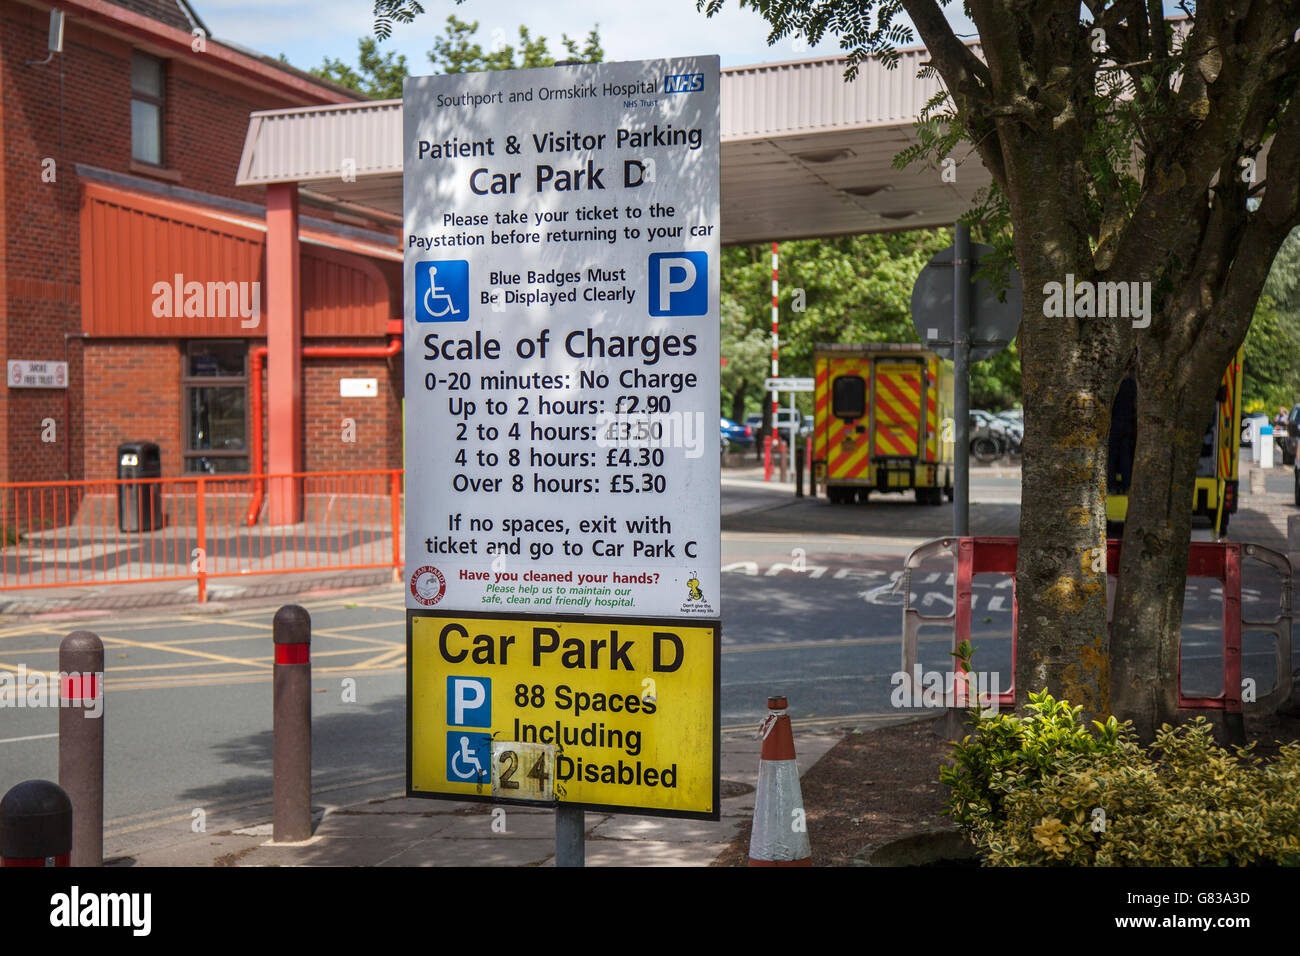 Three pounds after 20 minutes visitor parking charges at the NHS Trust Southport and Formby Hospital, information - Stock Image